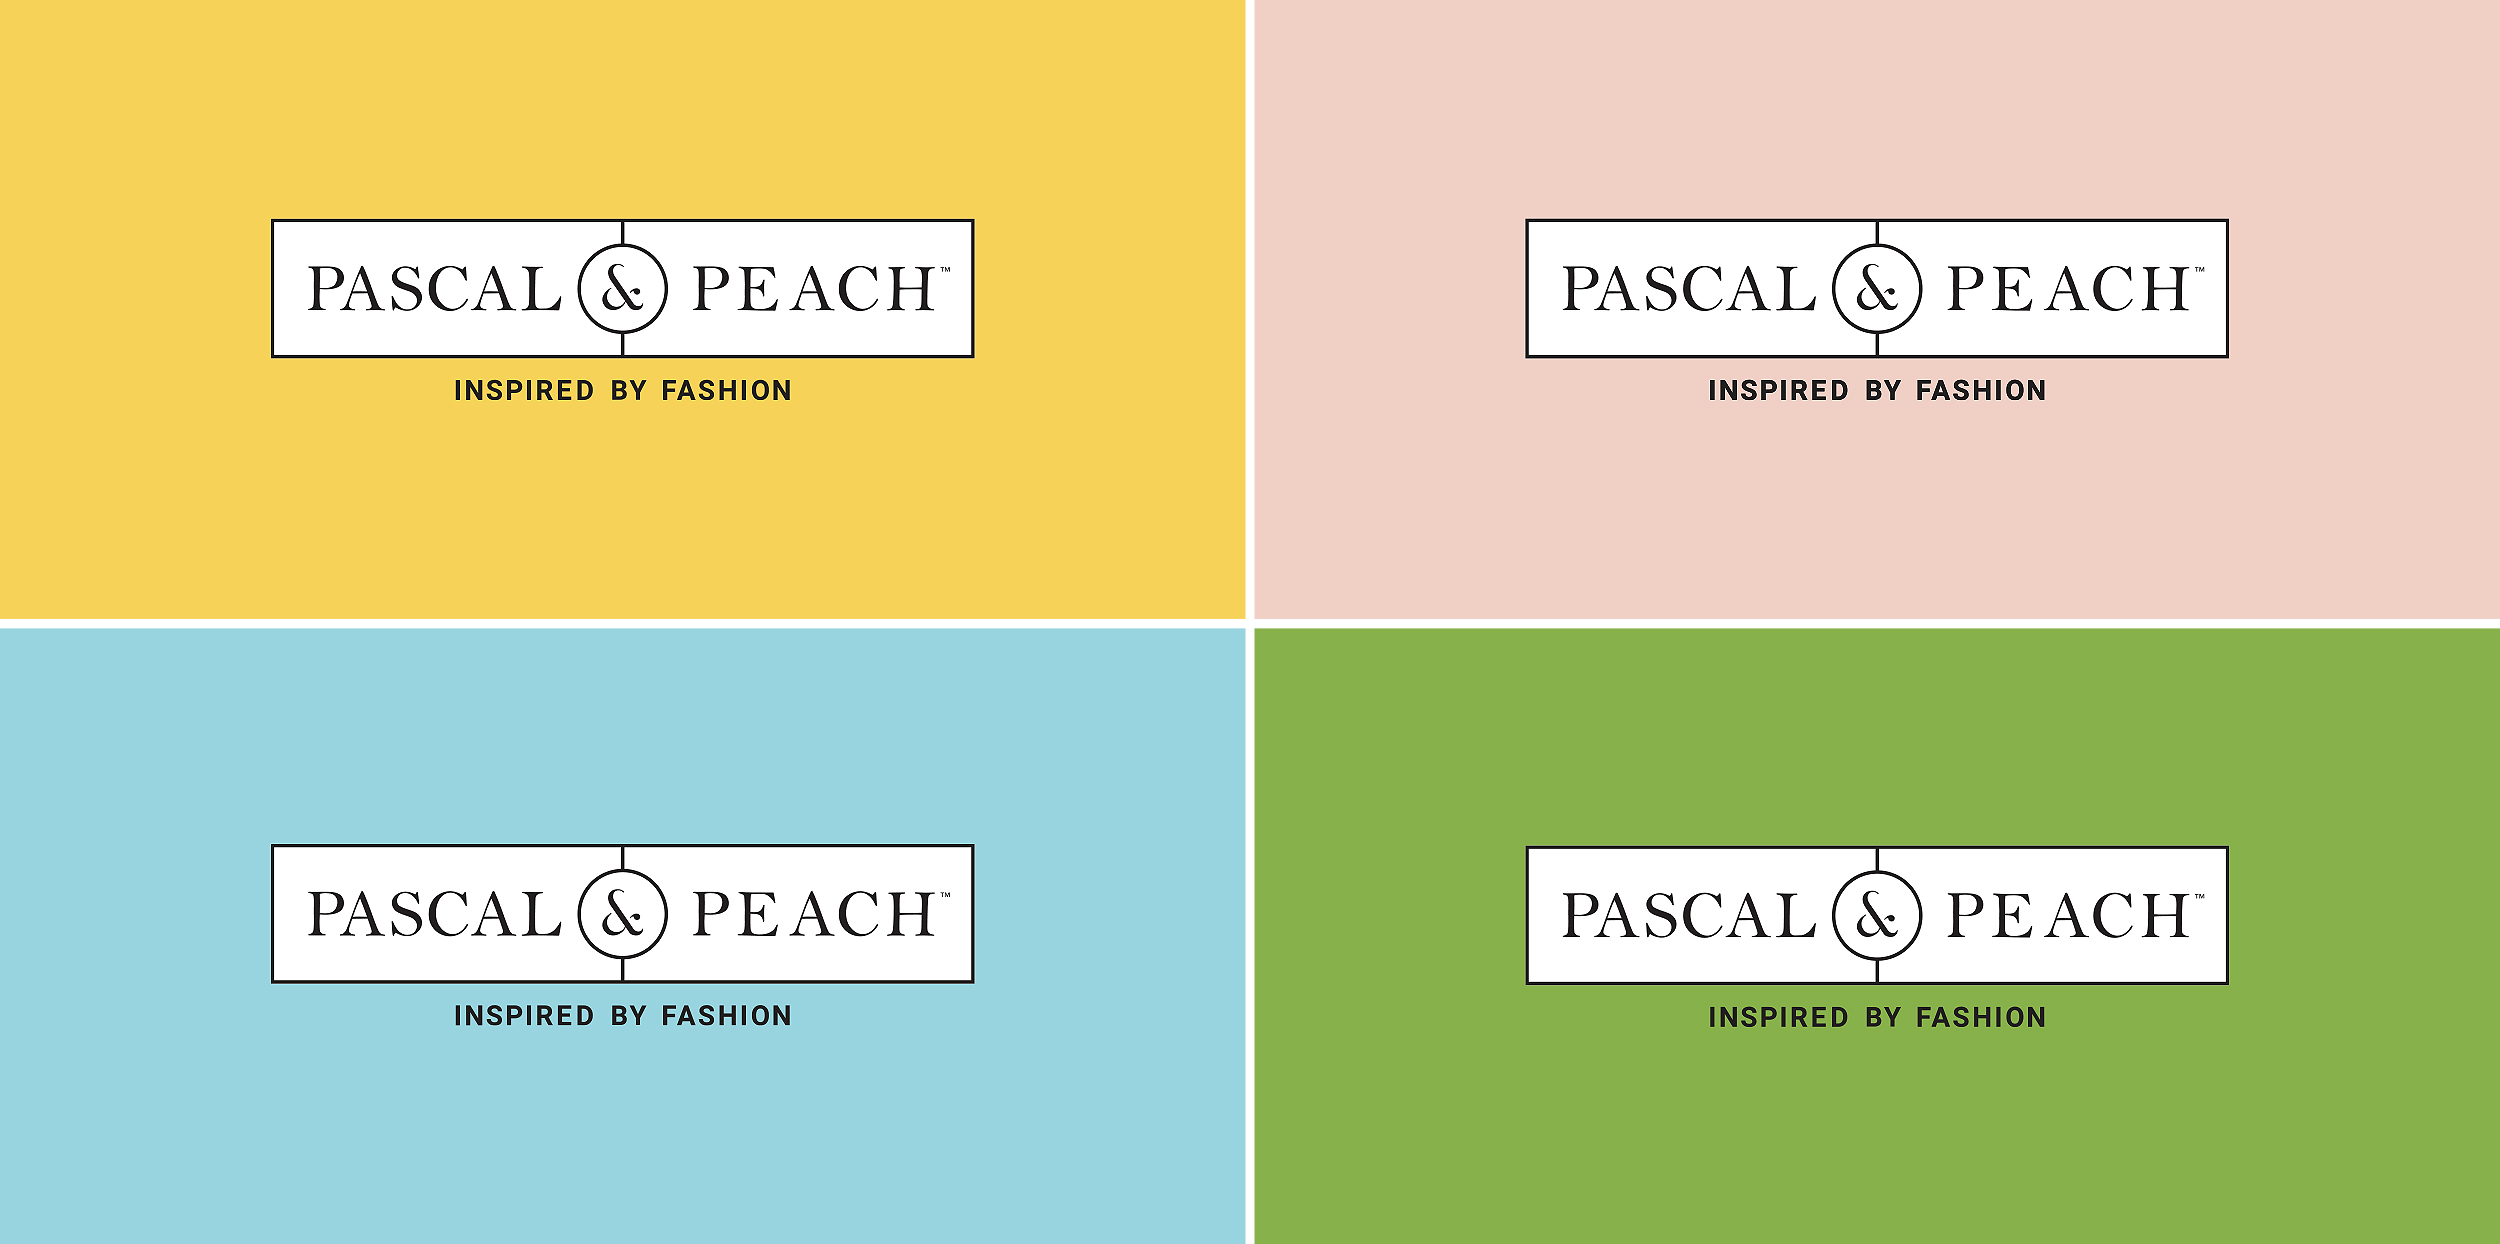 Pascal-and-Peach-Fashion-Branding-Parramatta-Design-Handle-Sydney_5.jpg